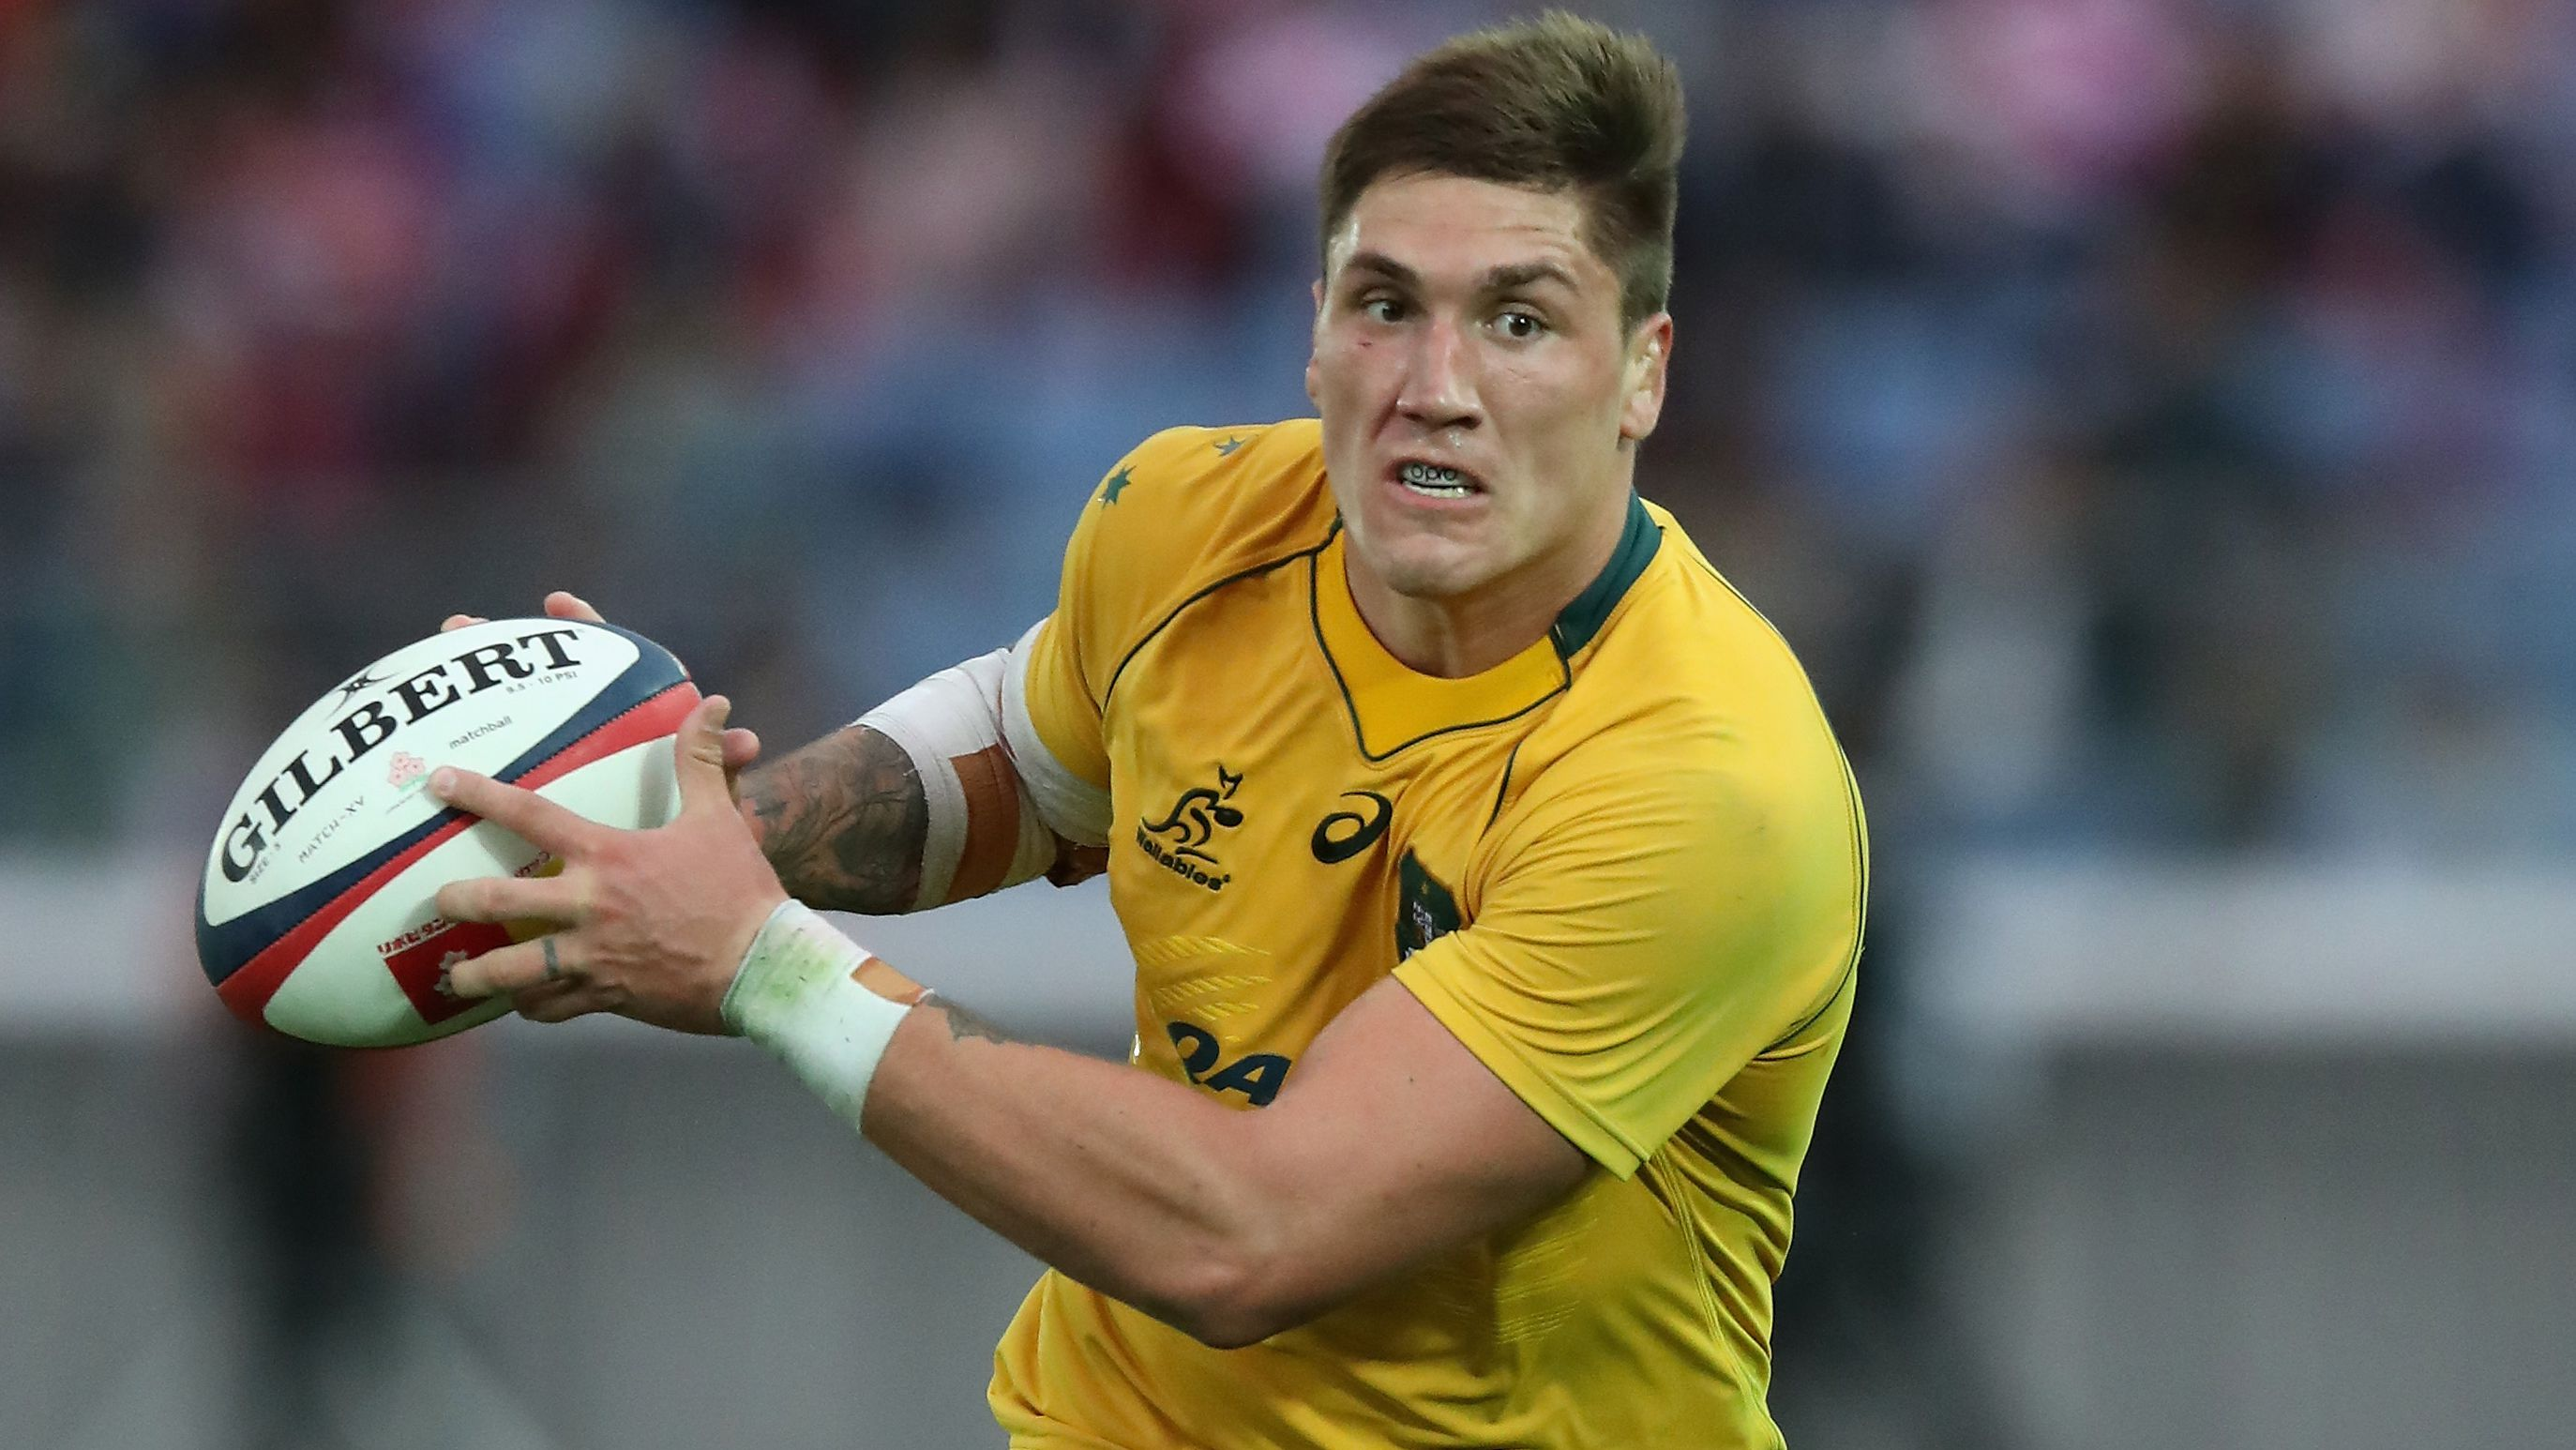 Latest Wallabies exile to be unleashed on world